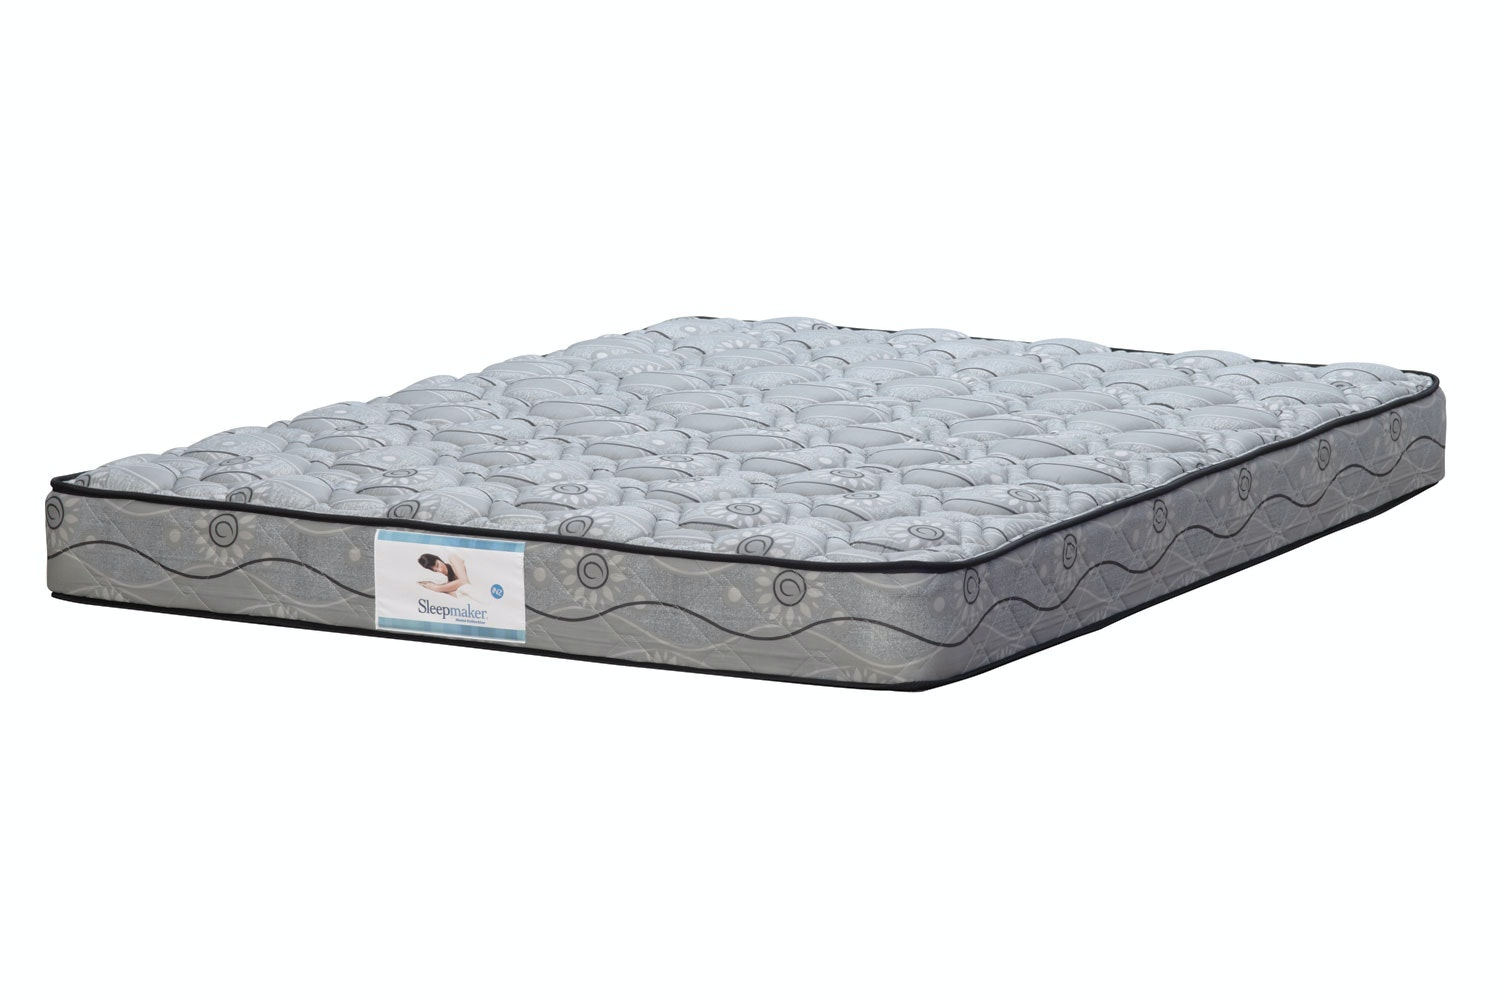 Slumber Support Medium Single Mattress by Sleepmaker